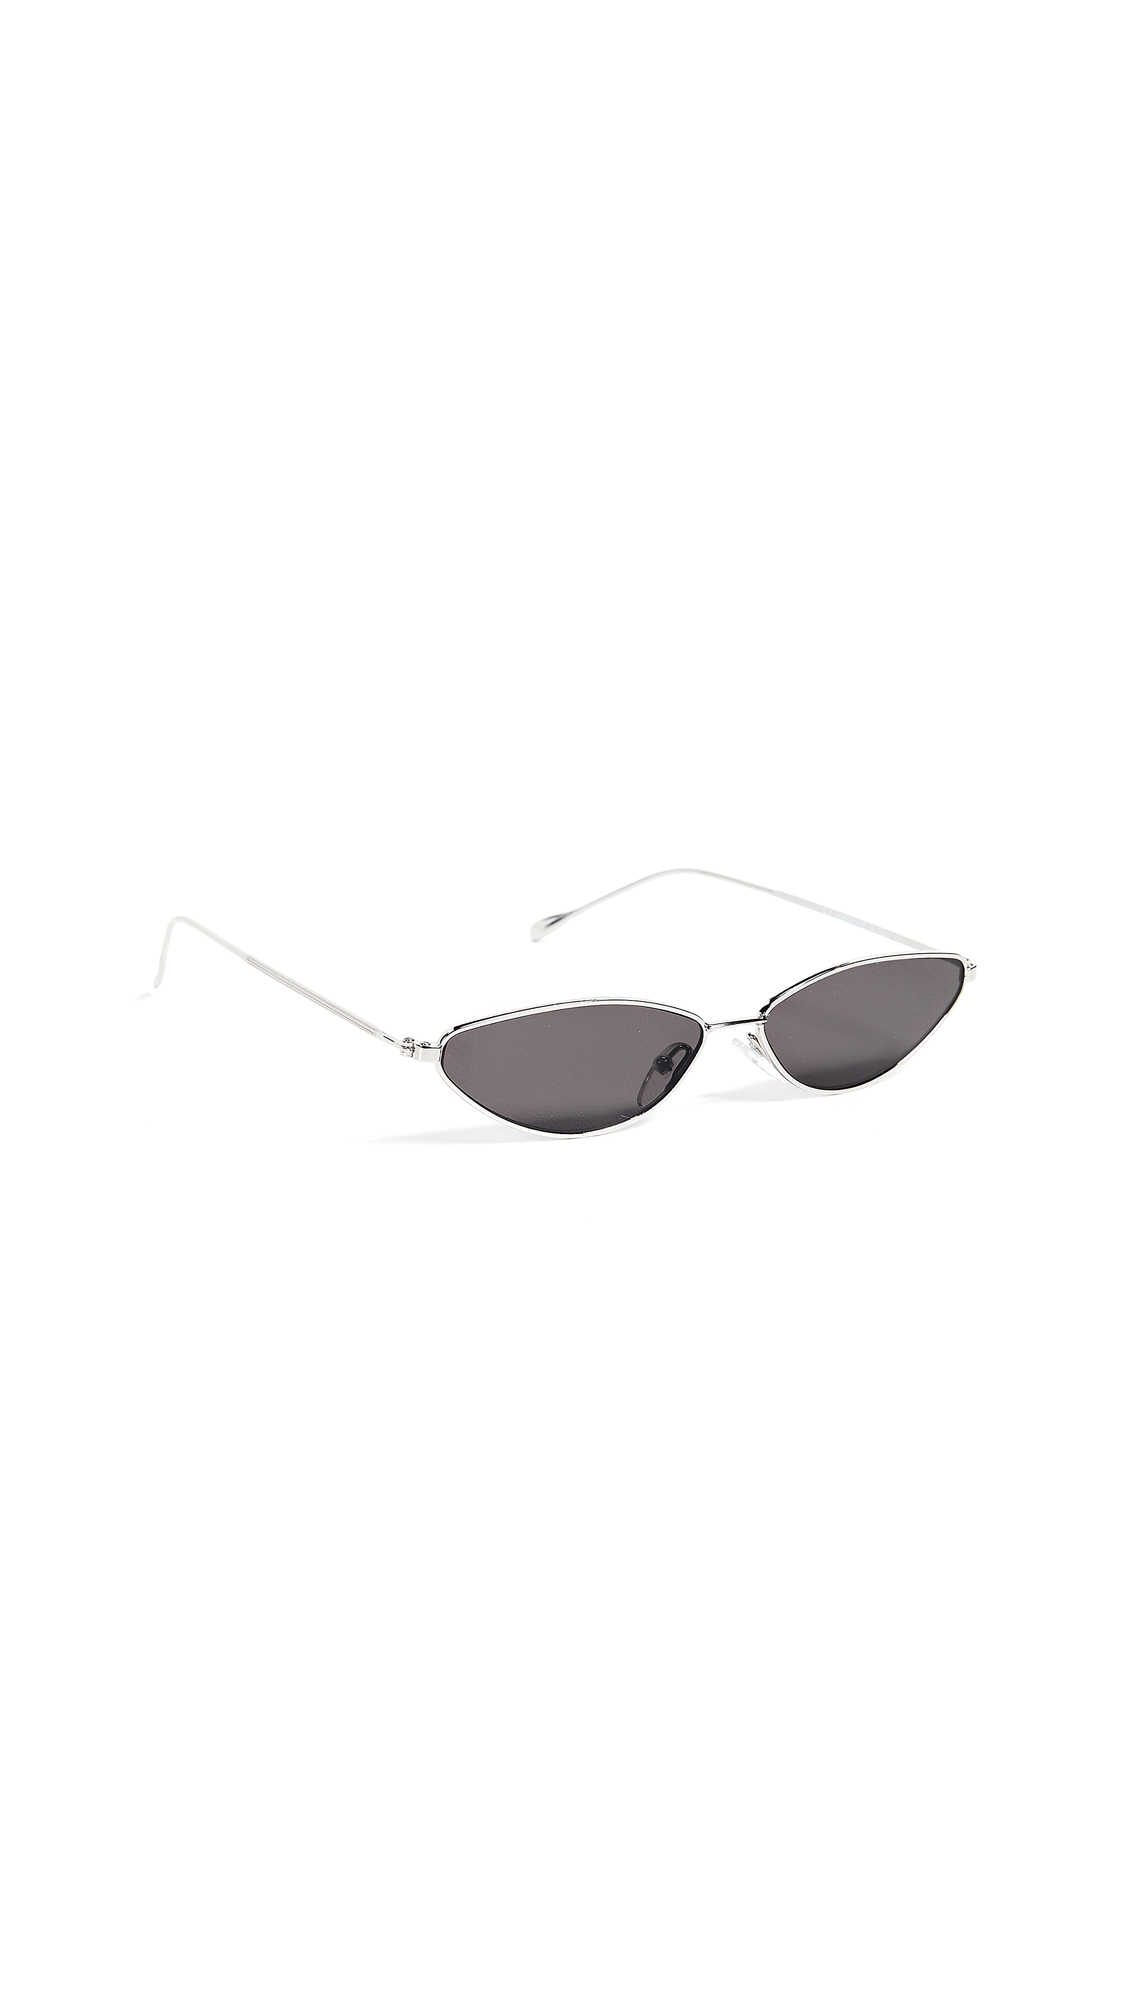 Illesteva Nimbin Sunglasses In Silver/Grey